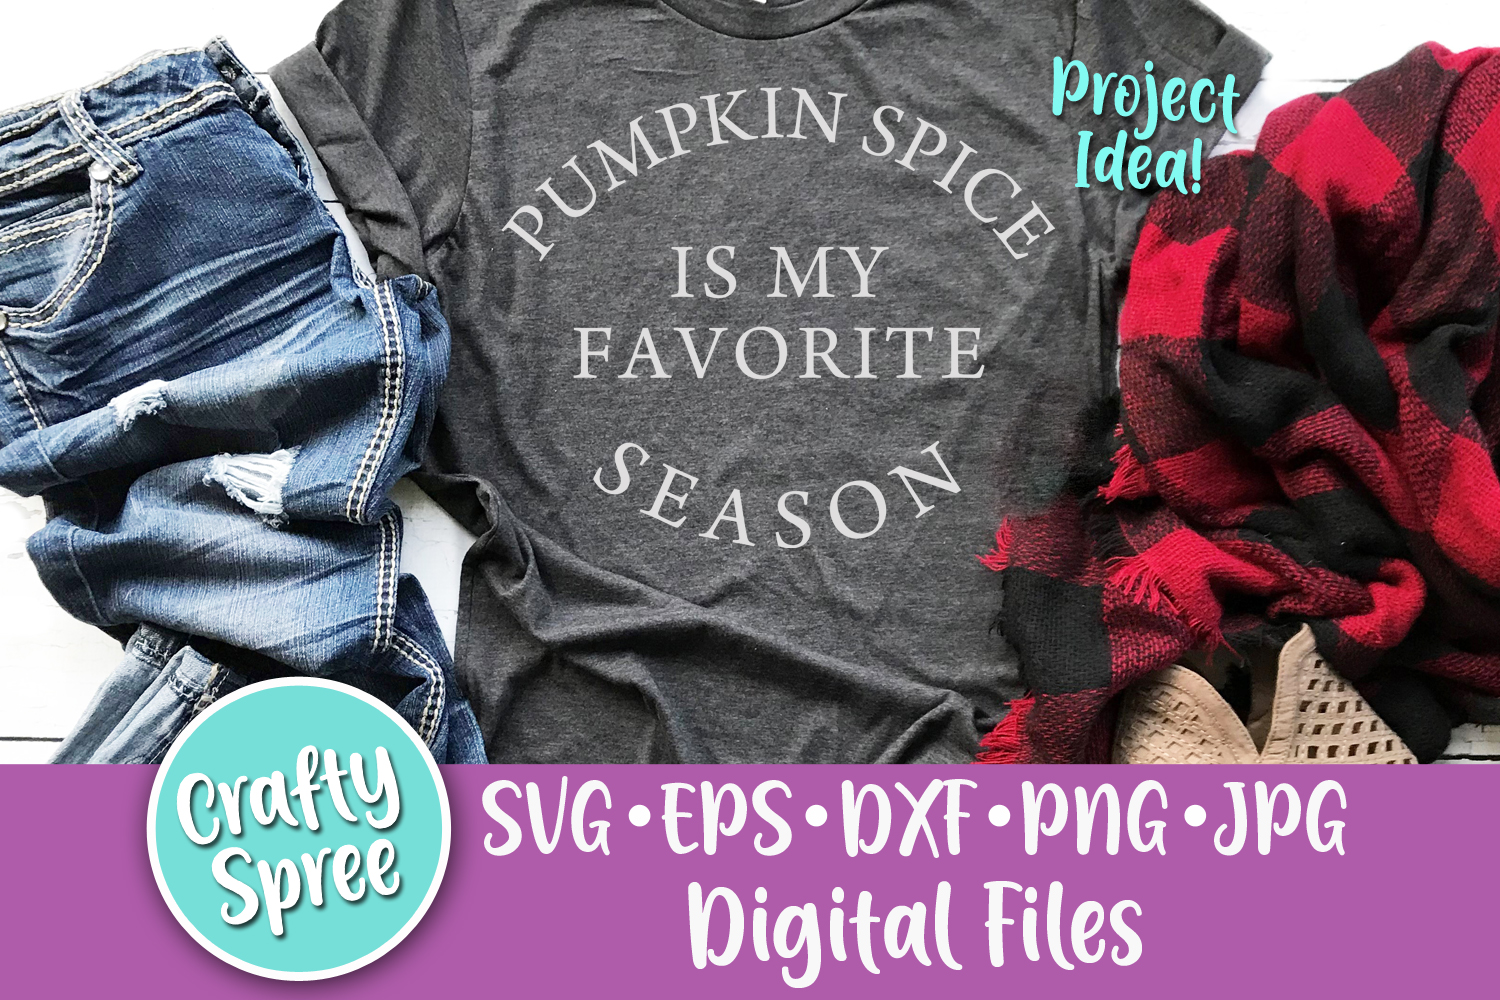 Pumpkins Spice is My Favorite Season SVG PNG DXF Cut File example image 1